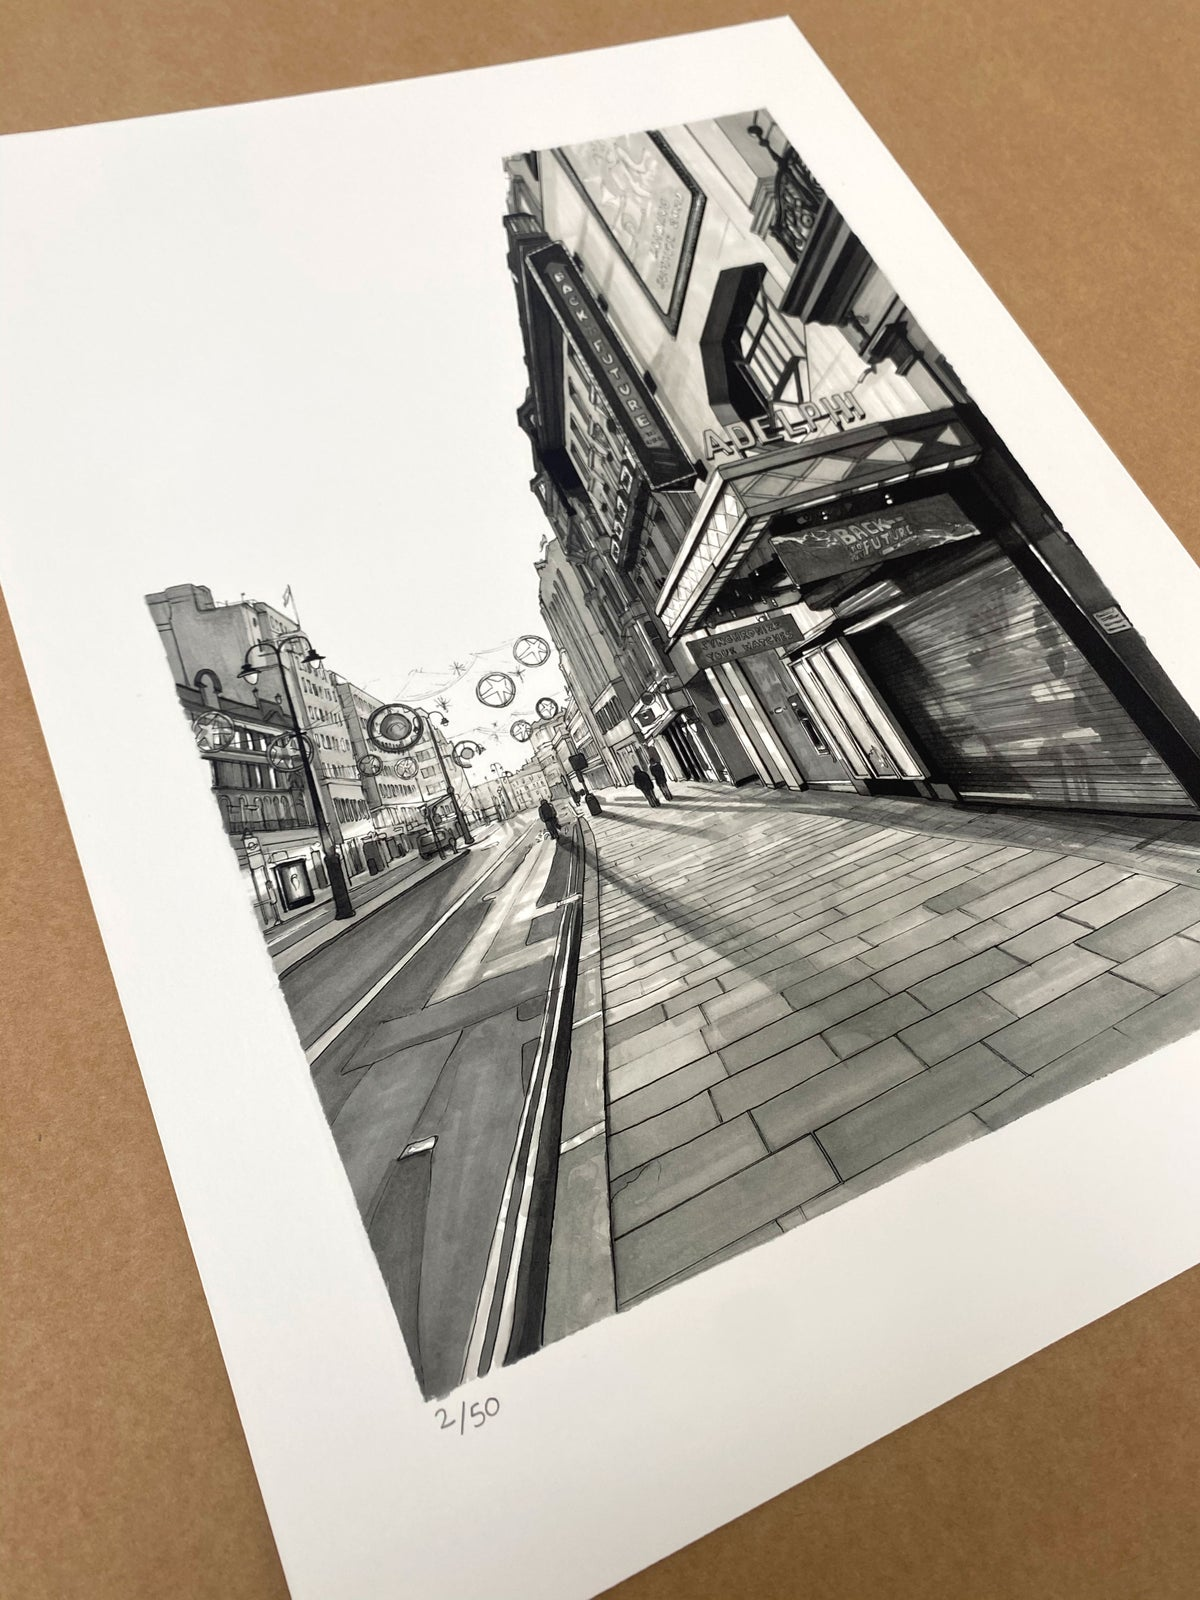 BACK TO THE FUTURE // LIMITED EDITION PRINT